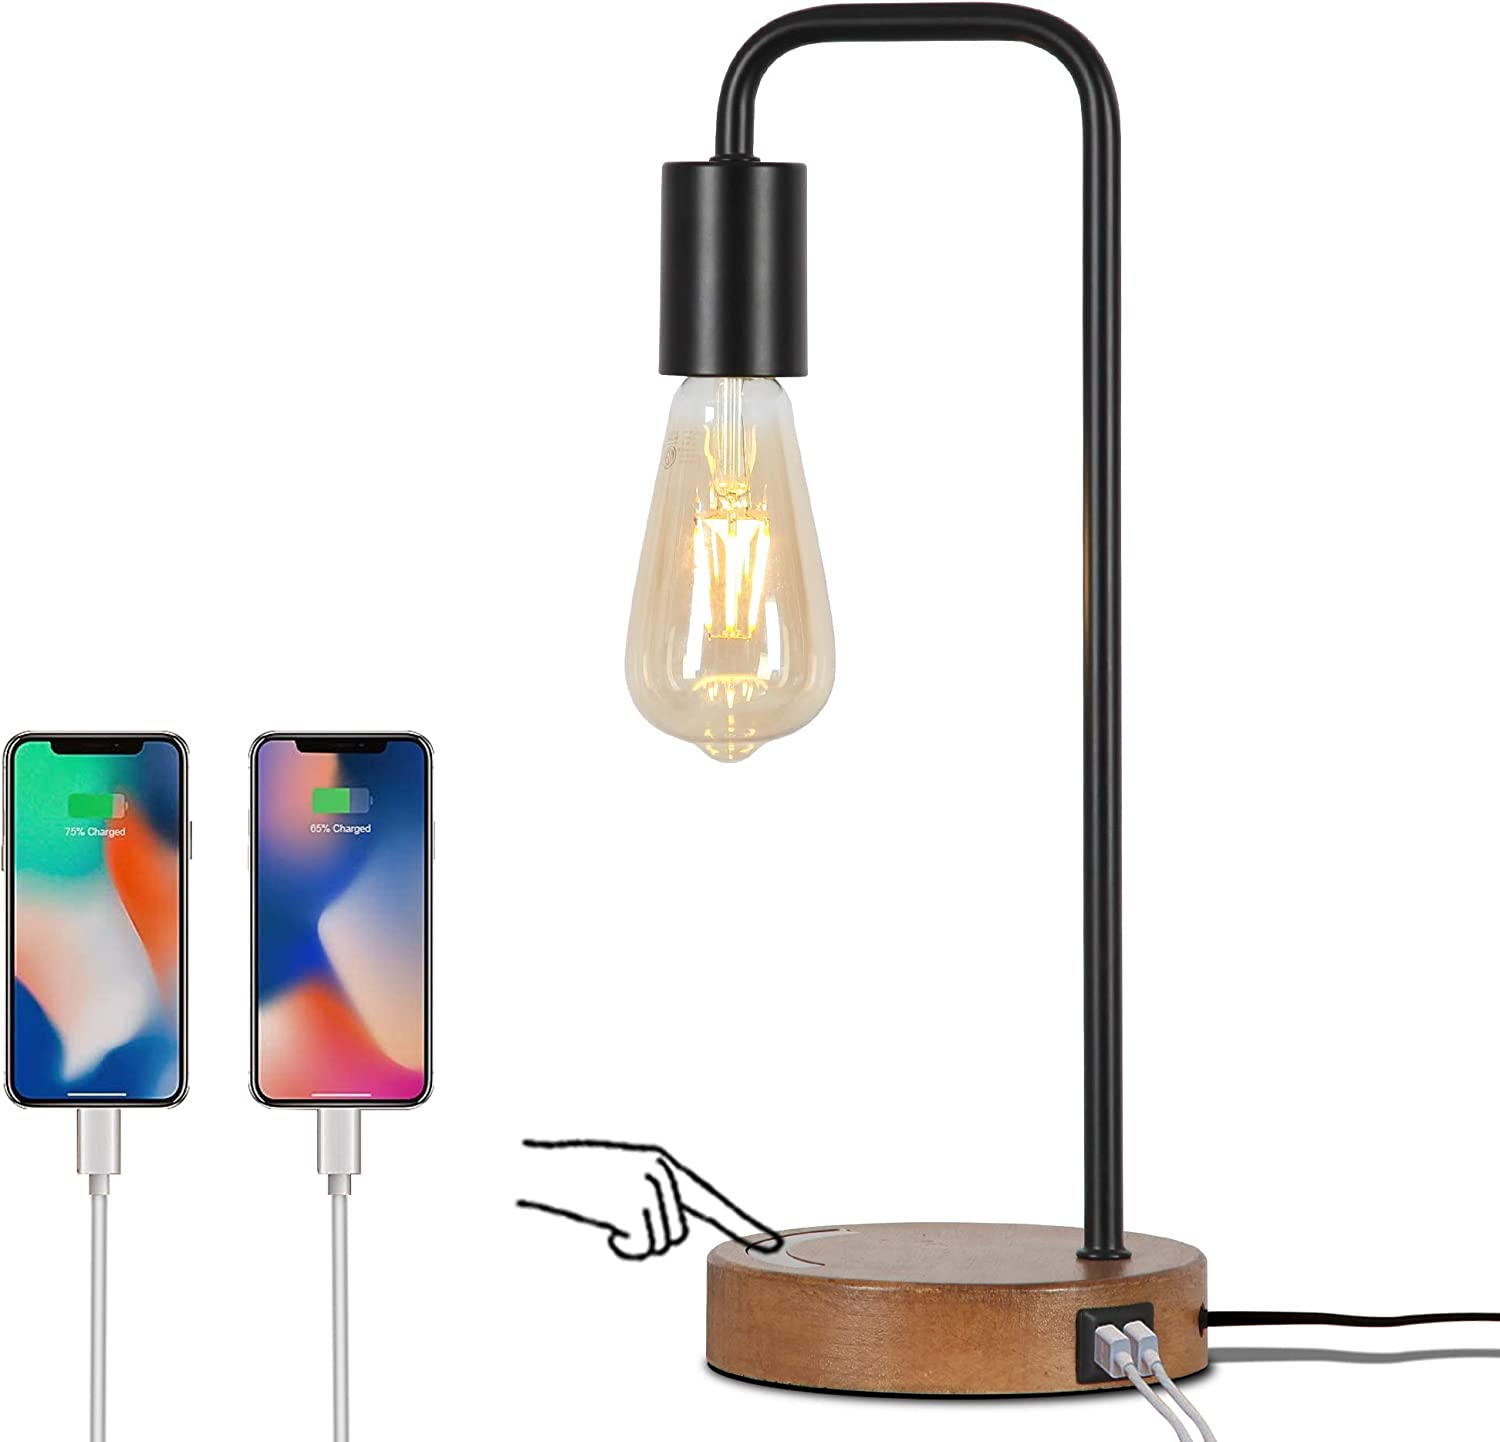 Touch Control Industrial Desk Lamp , Dimmable Bedside Lamp with Faux Wood Base Nightstand Table Lamp Office Work Lamp for Living Room Bedroom, Office, College Dorm Included 3 Way Bulb